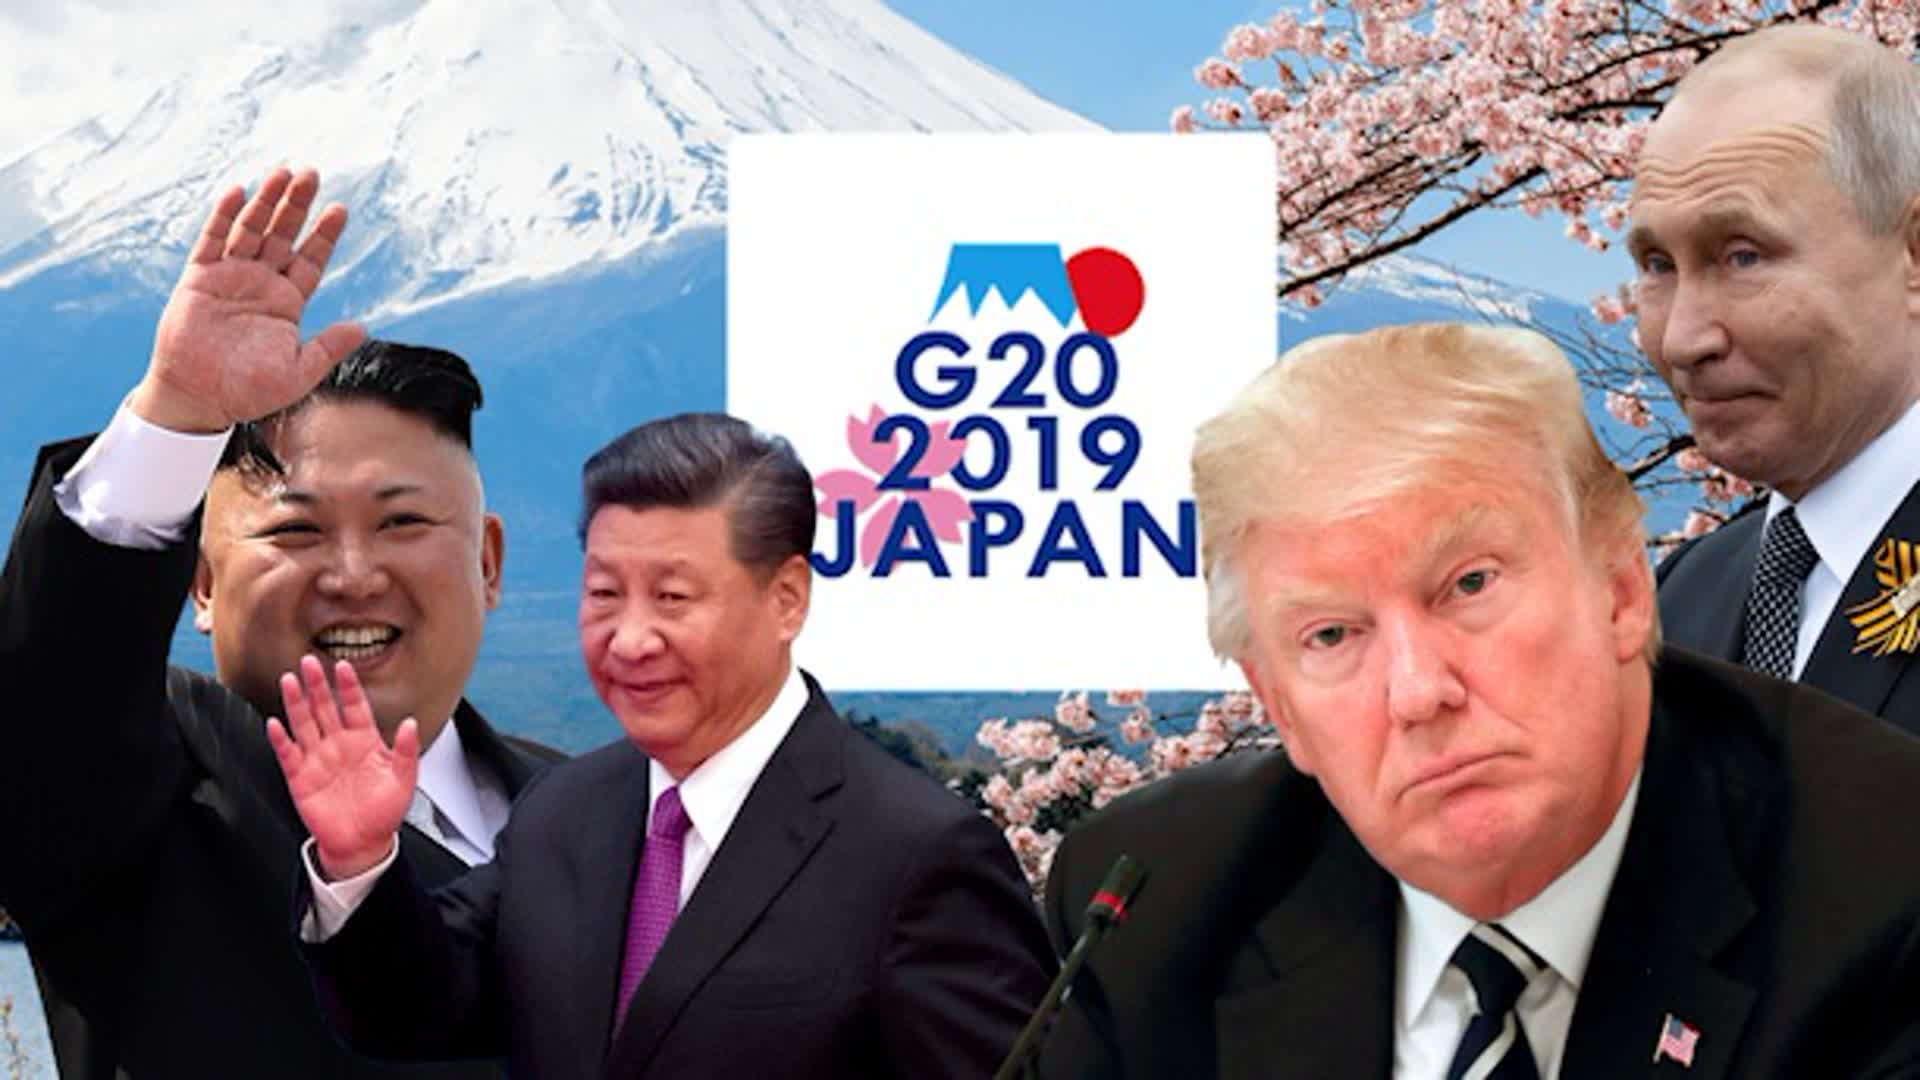 Global tensions and trade issues hit Trump's G-20